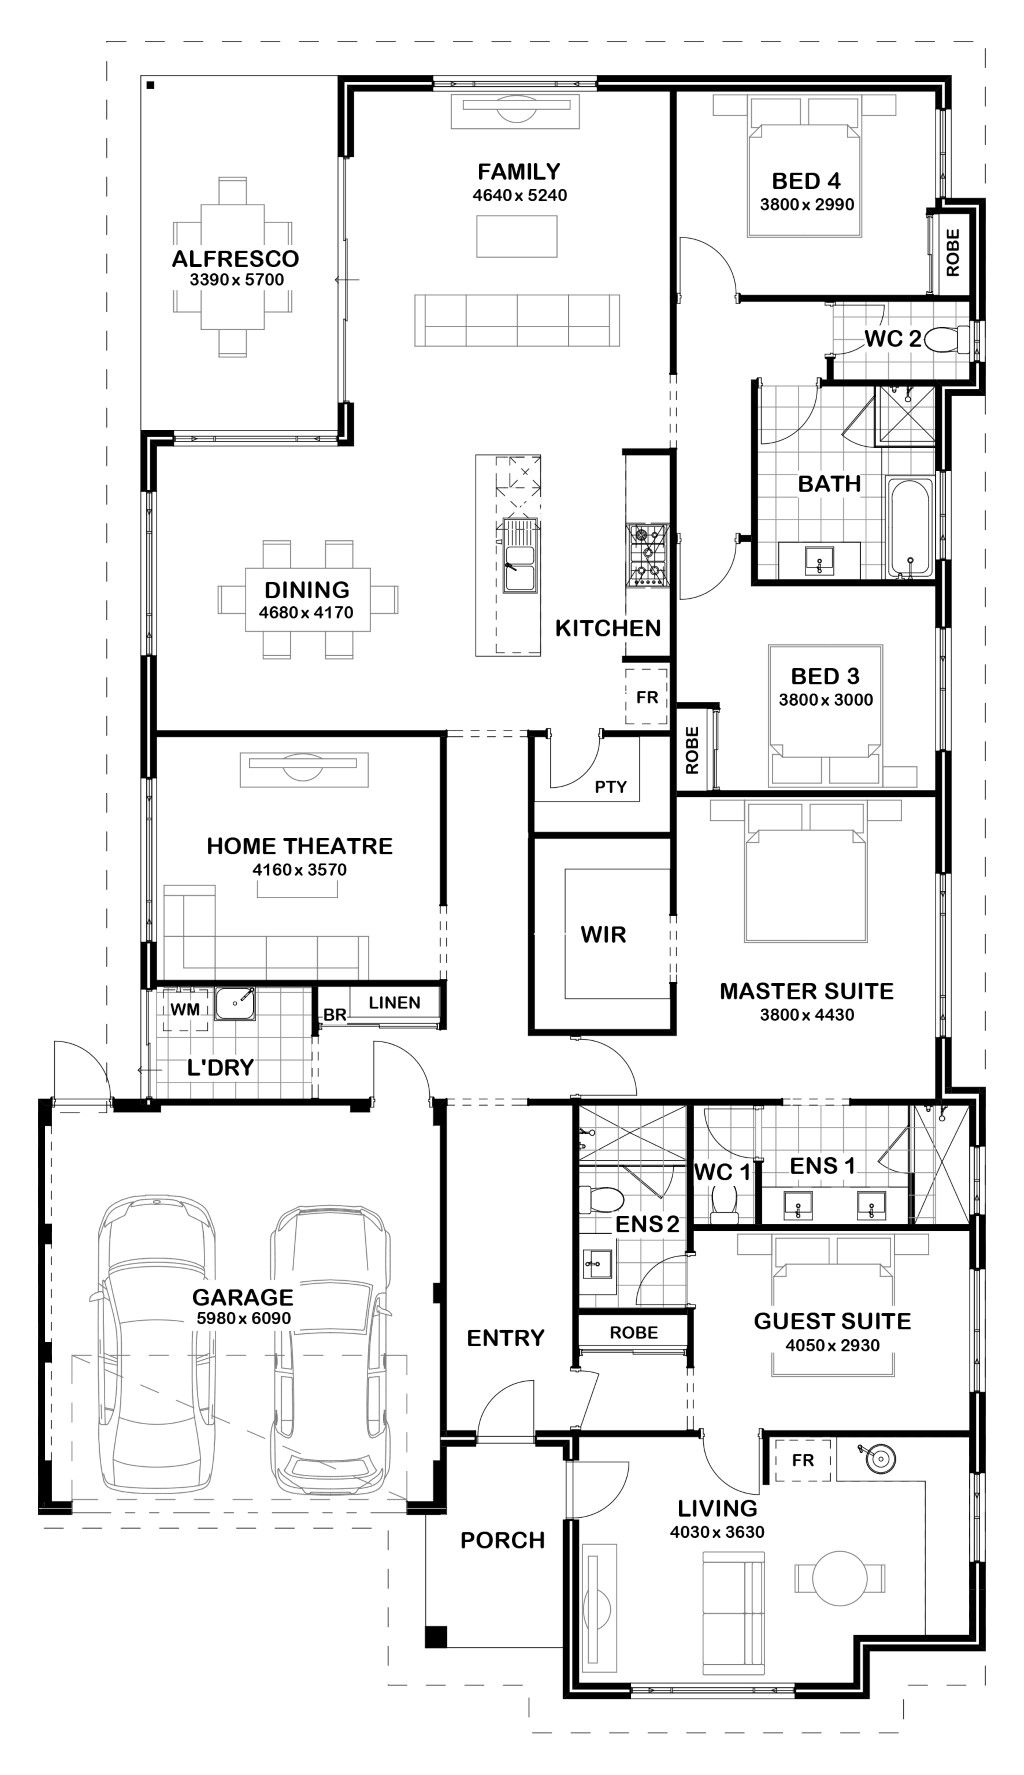 Tranquility Gemmill Homes Multigenerational House Plans New House Plans Home Design Floor Plans